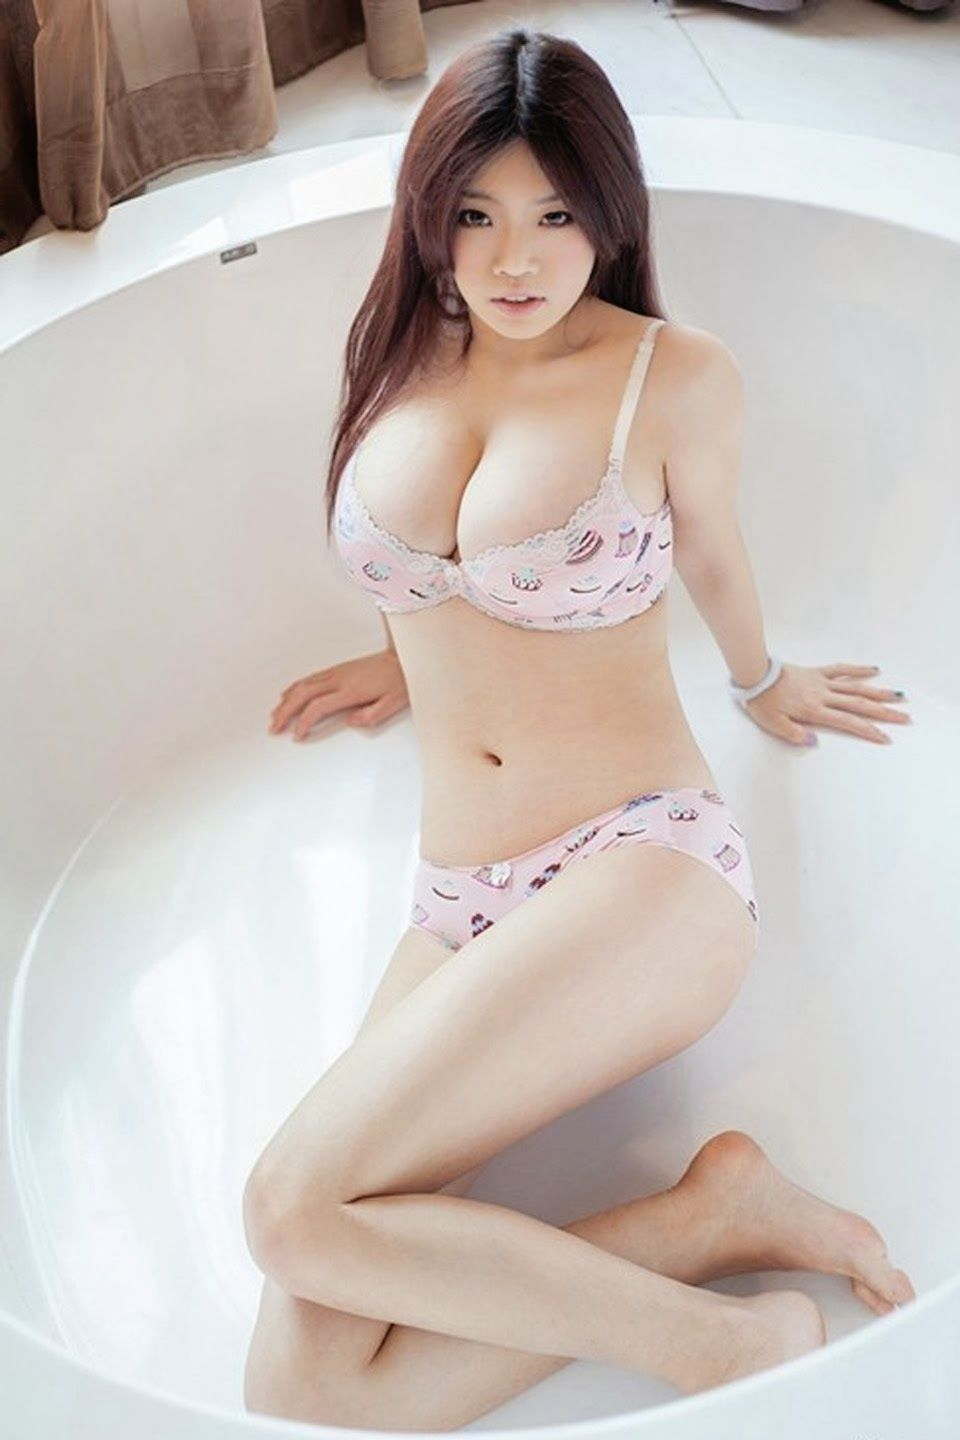 Asian woman images brilliant  great